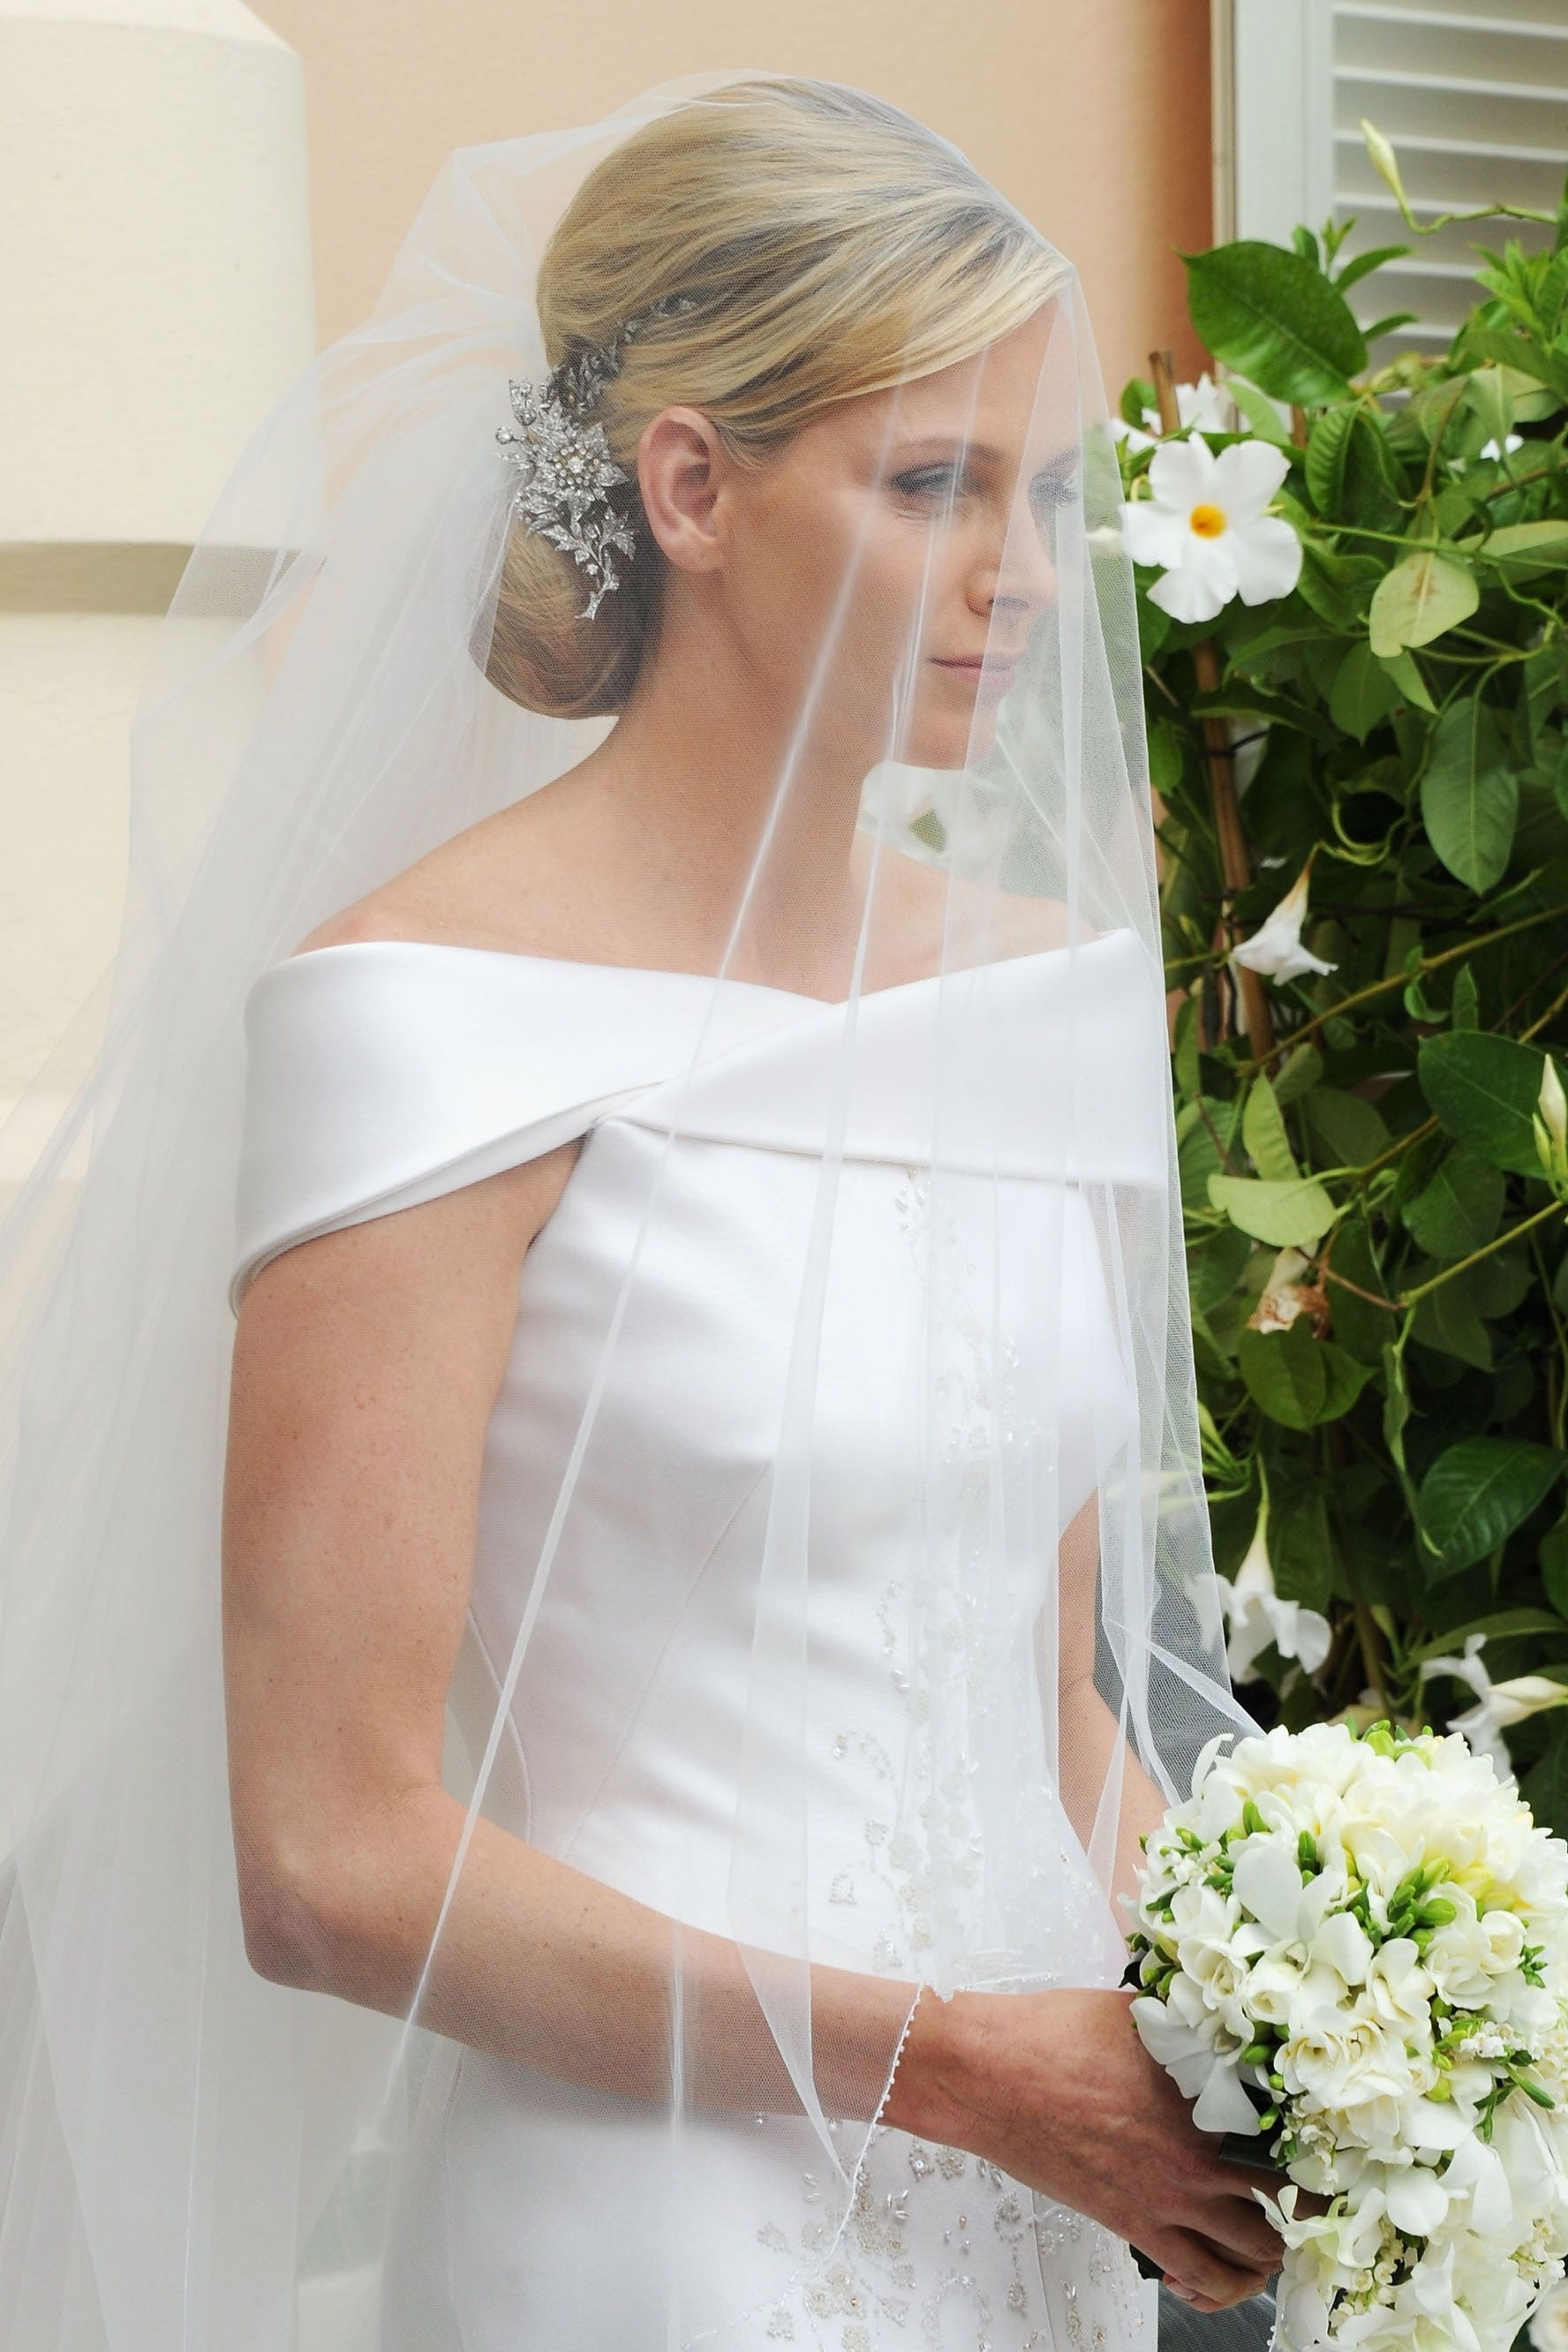 Preferred Wedding Hairstyles With Veil Over Face Intended For 16 Best Wedding Hairstyles For Short And Long Hair 2018 – Romantic (View 10 of 17)